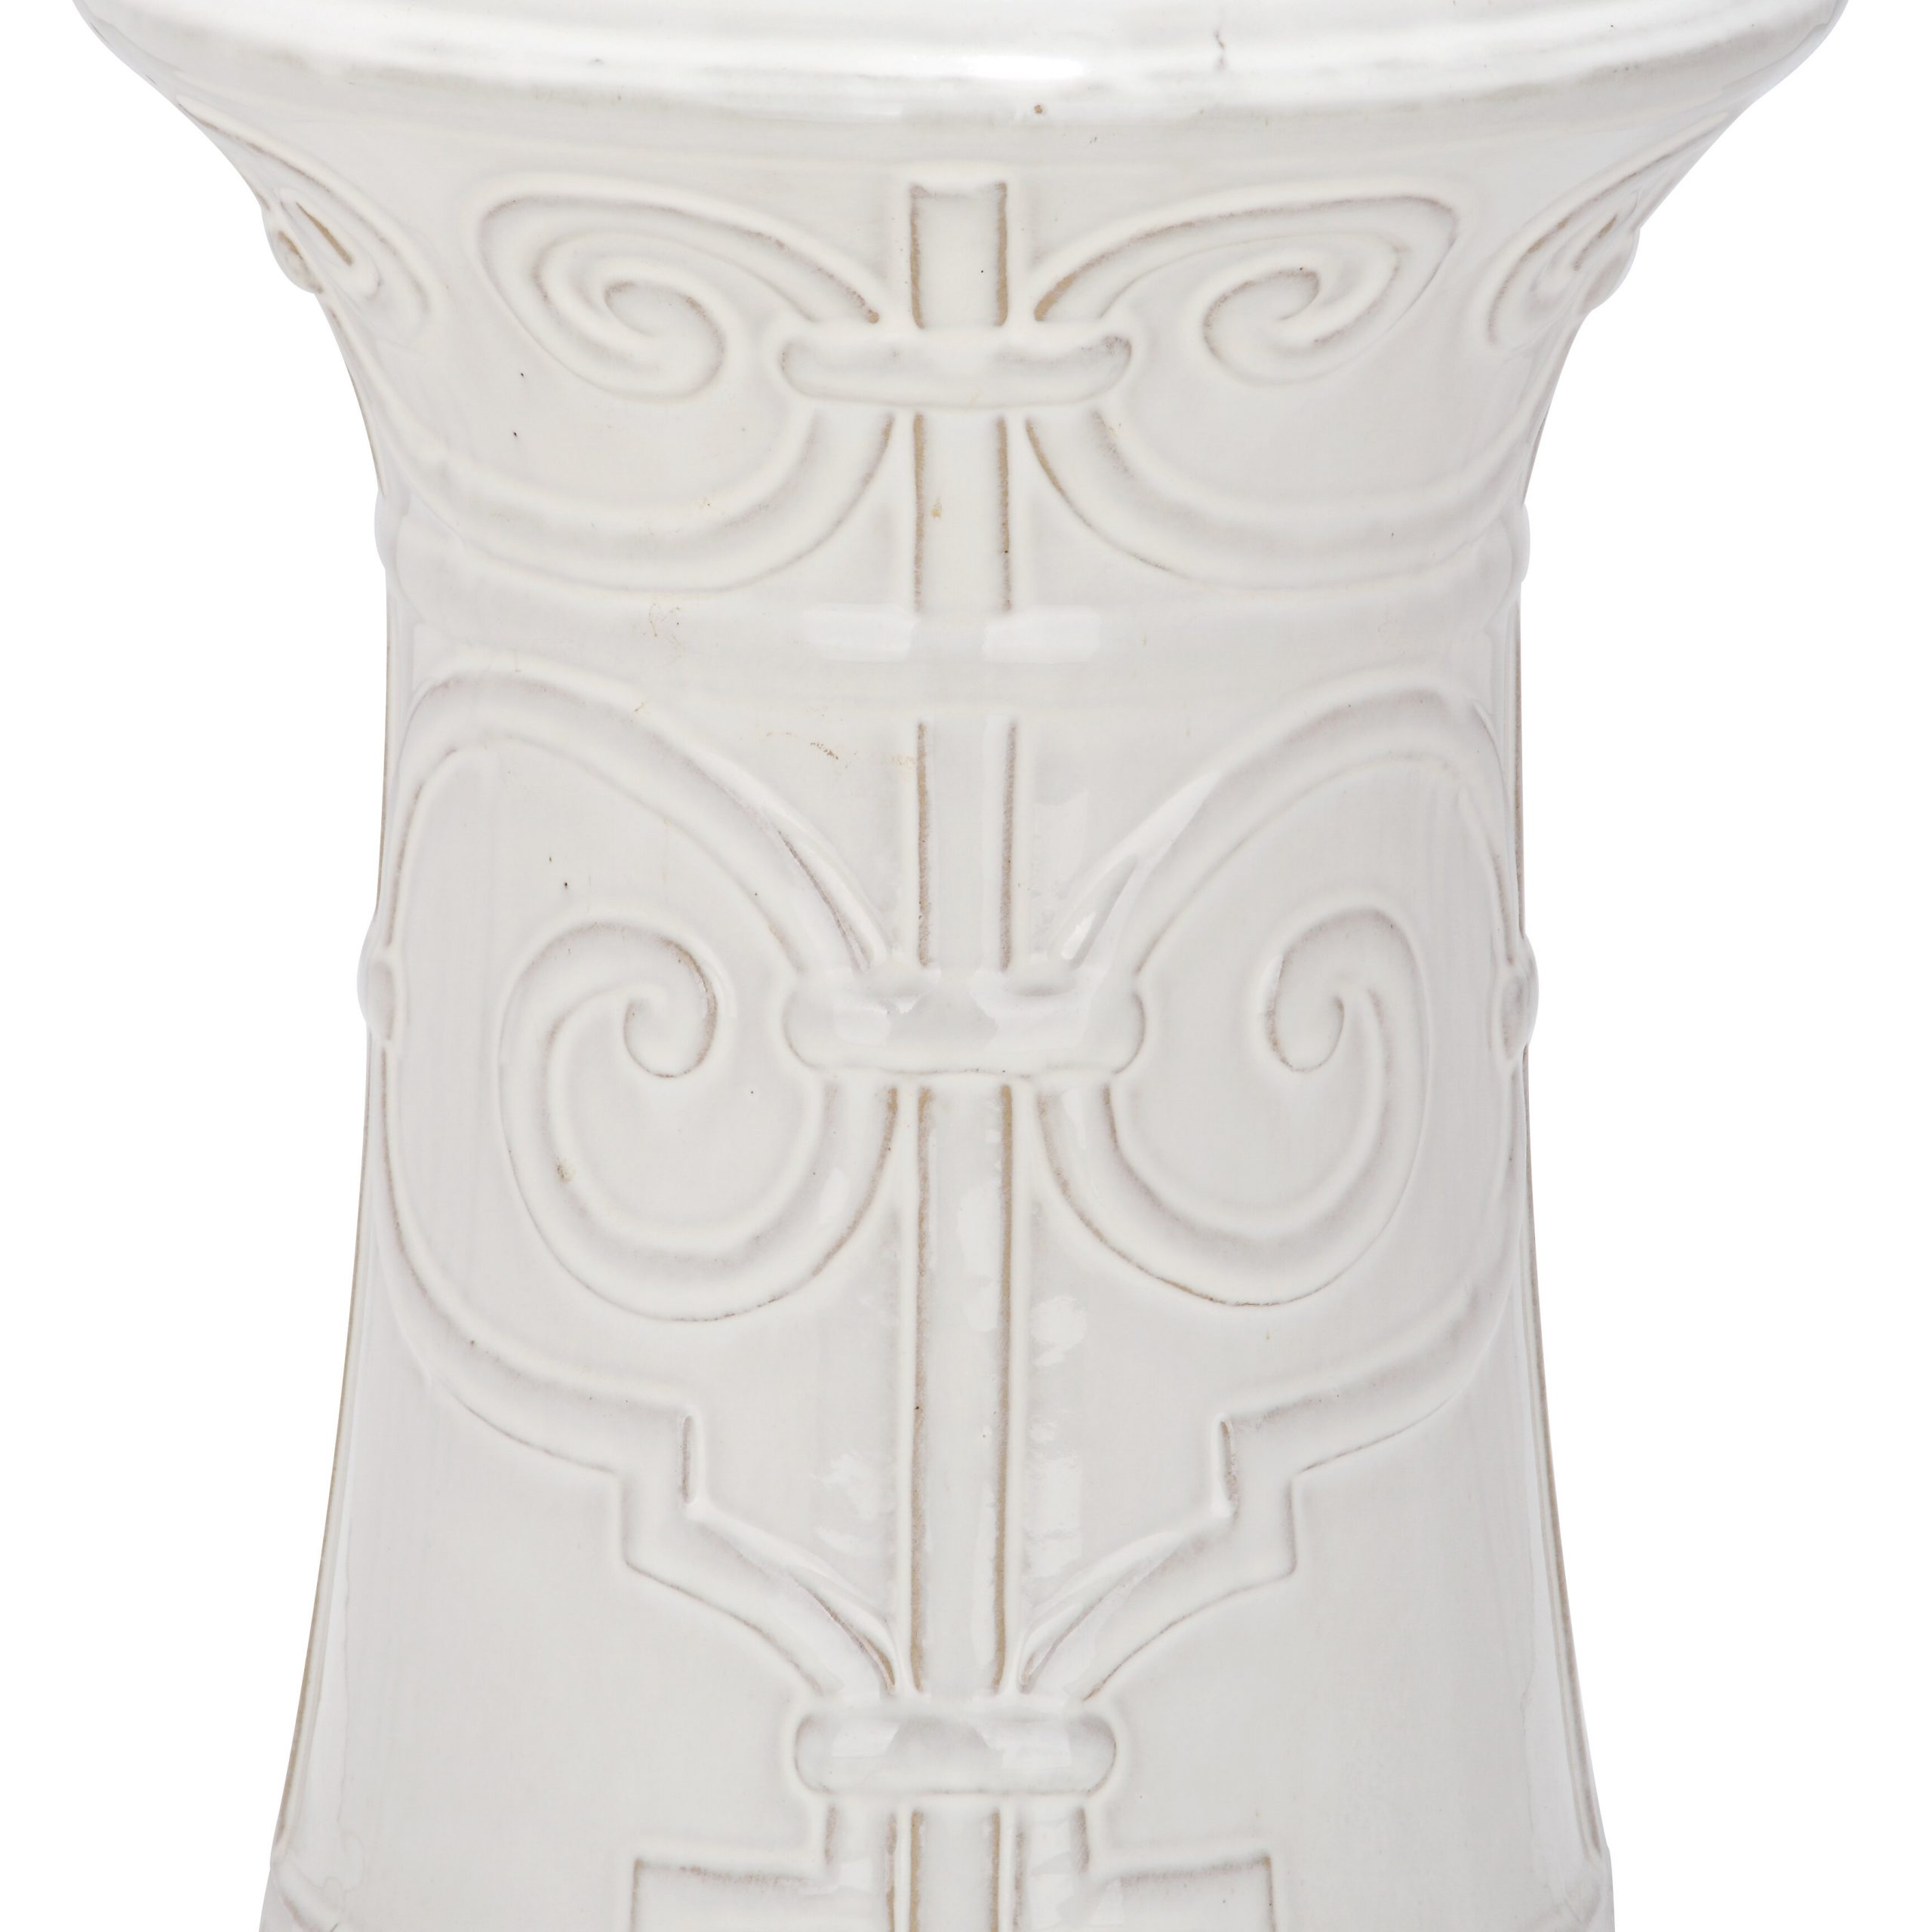 Imperial Scroll Ceramic Garden Stool Pertaining To Janke Floral Garden Stools (View 18 of 25)